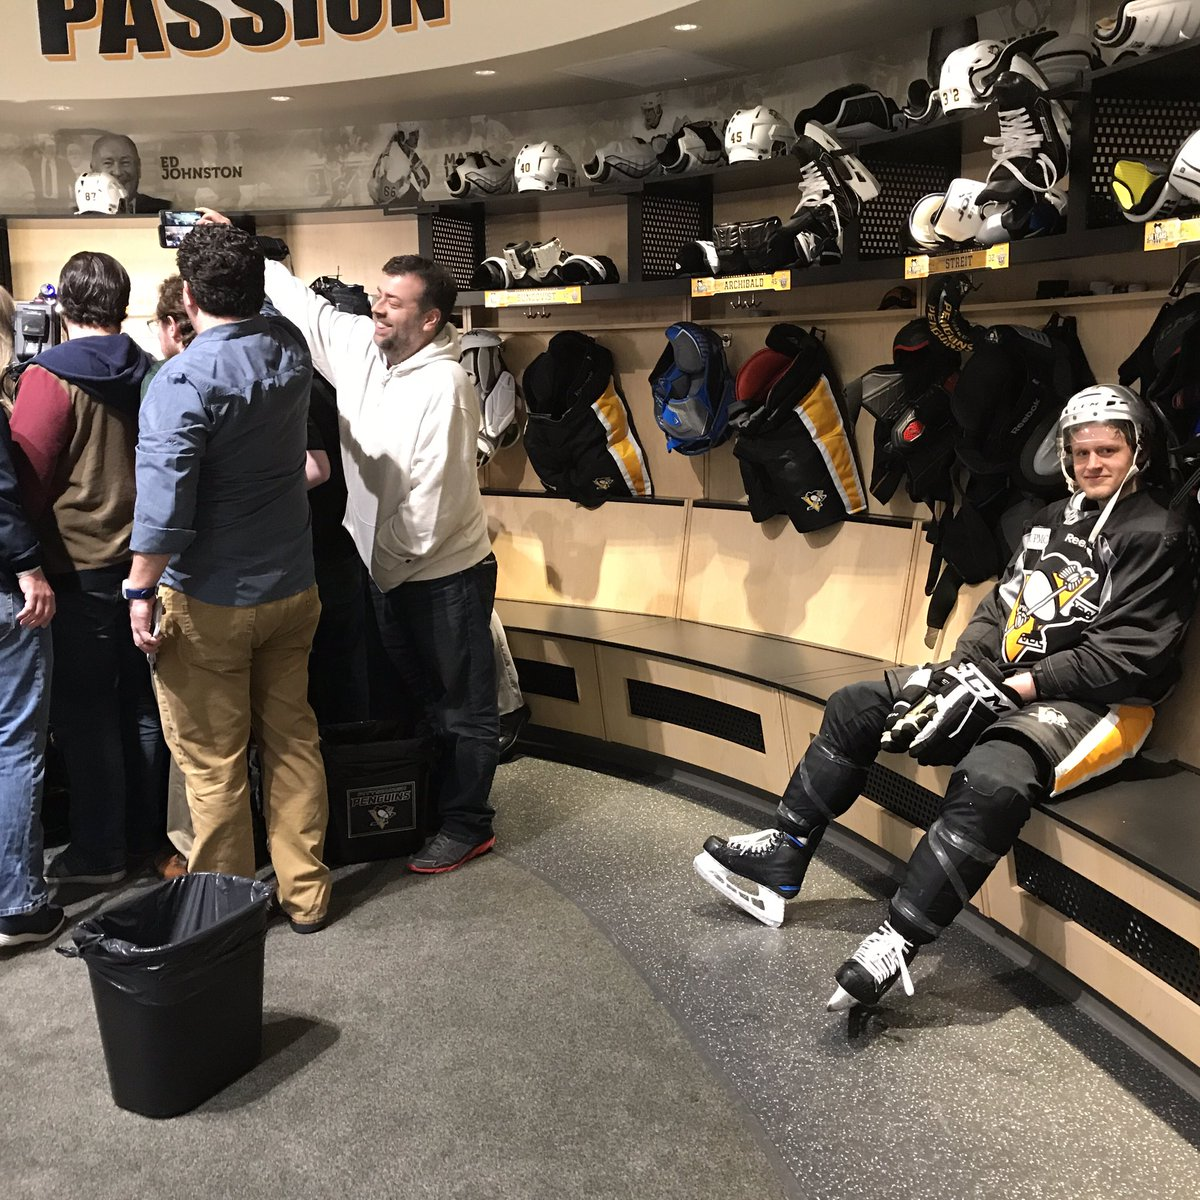 ".@jakenbake20 ""Someone's been sitting in my stall"" https://t.co/CjrrQnyMR1"